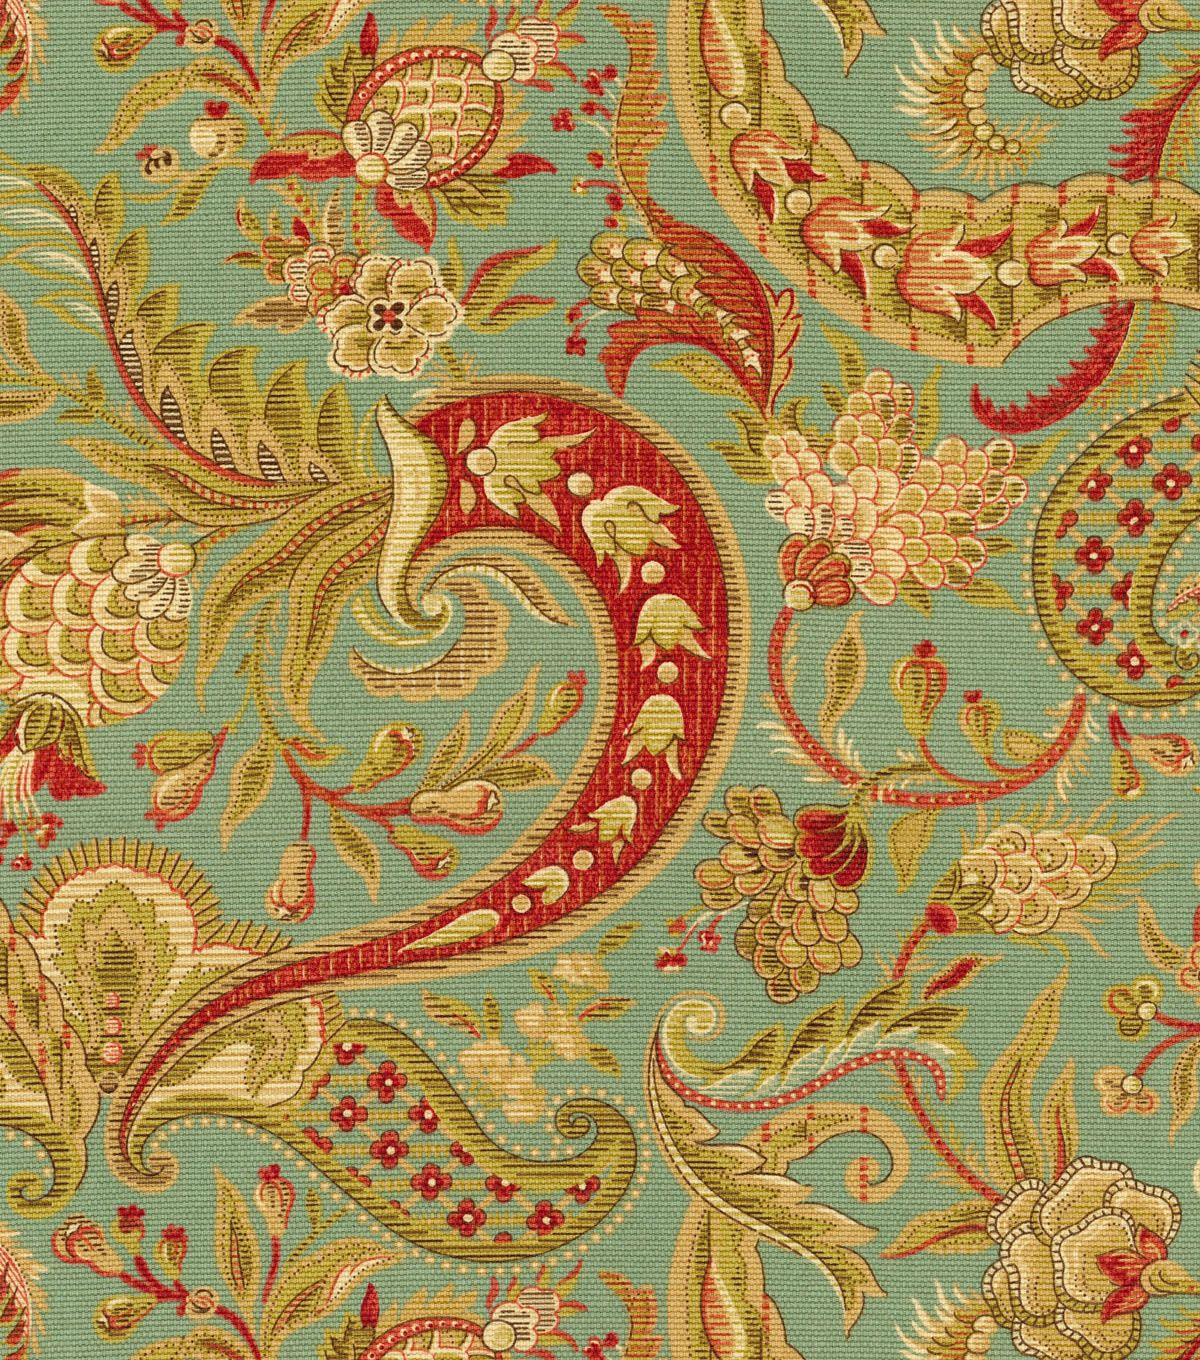 A traditional paisley home dcor fabric with elegant color